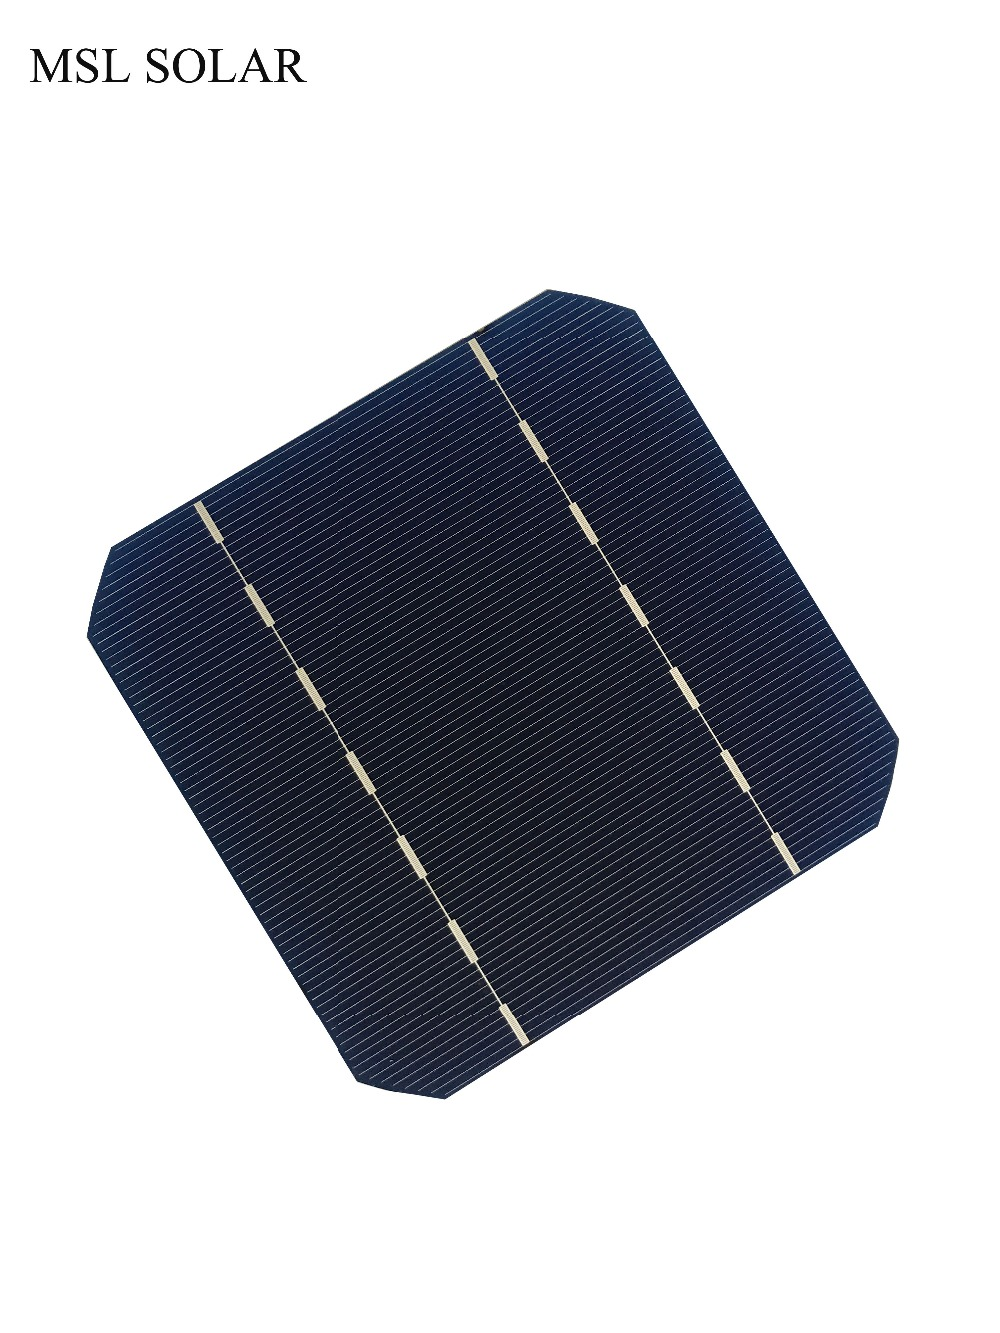 MSL SOLAR 100W DIY solar panel Kit 40pcs monocrystalline solar cell 5x5 with 20m Tabbing wire 2m Busbar wire and 1pcs flux pen.